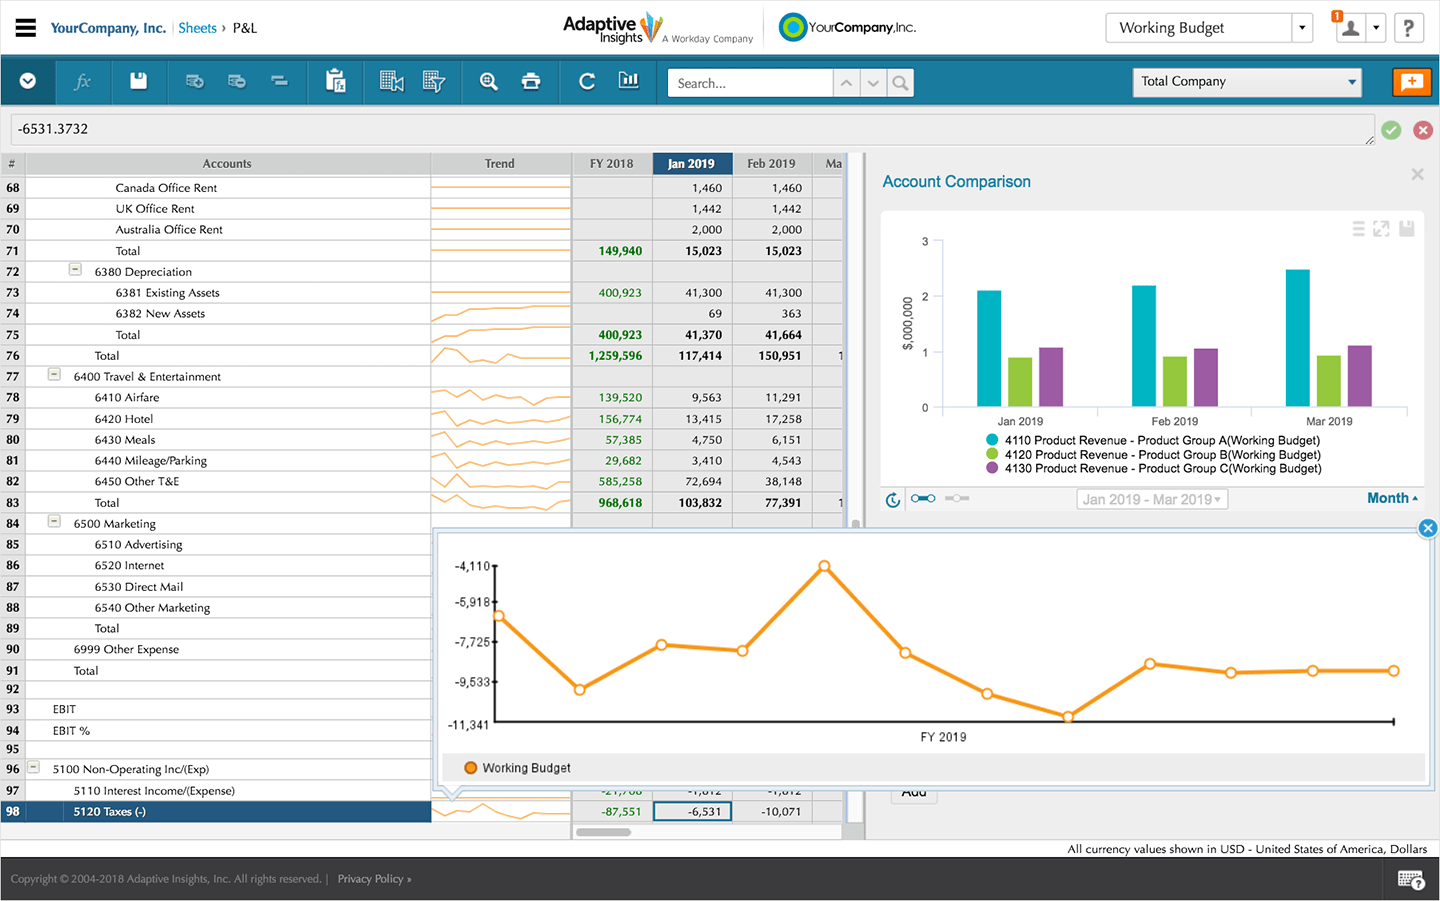 view of financial statements in Workday Adaptive Planning